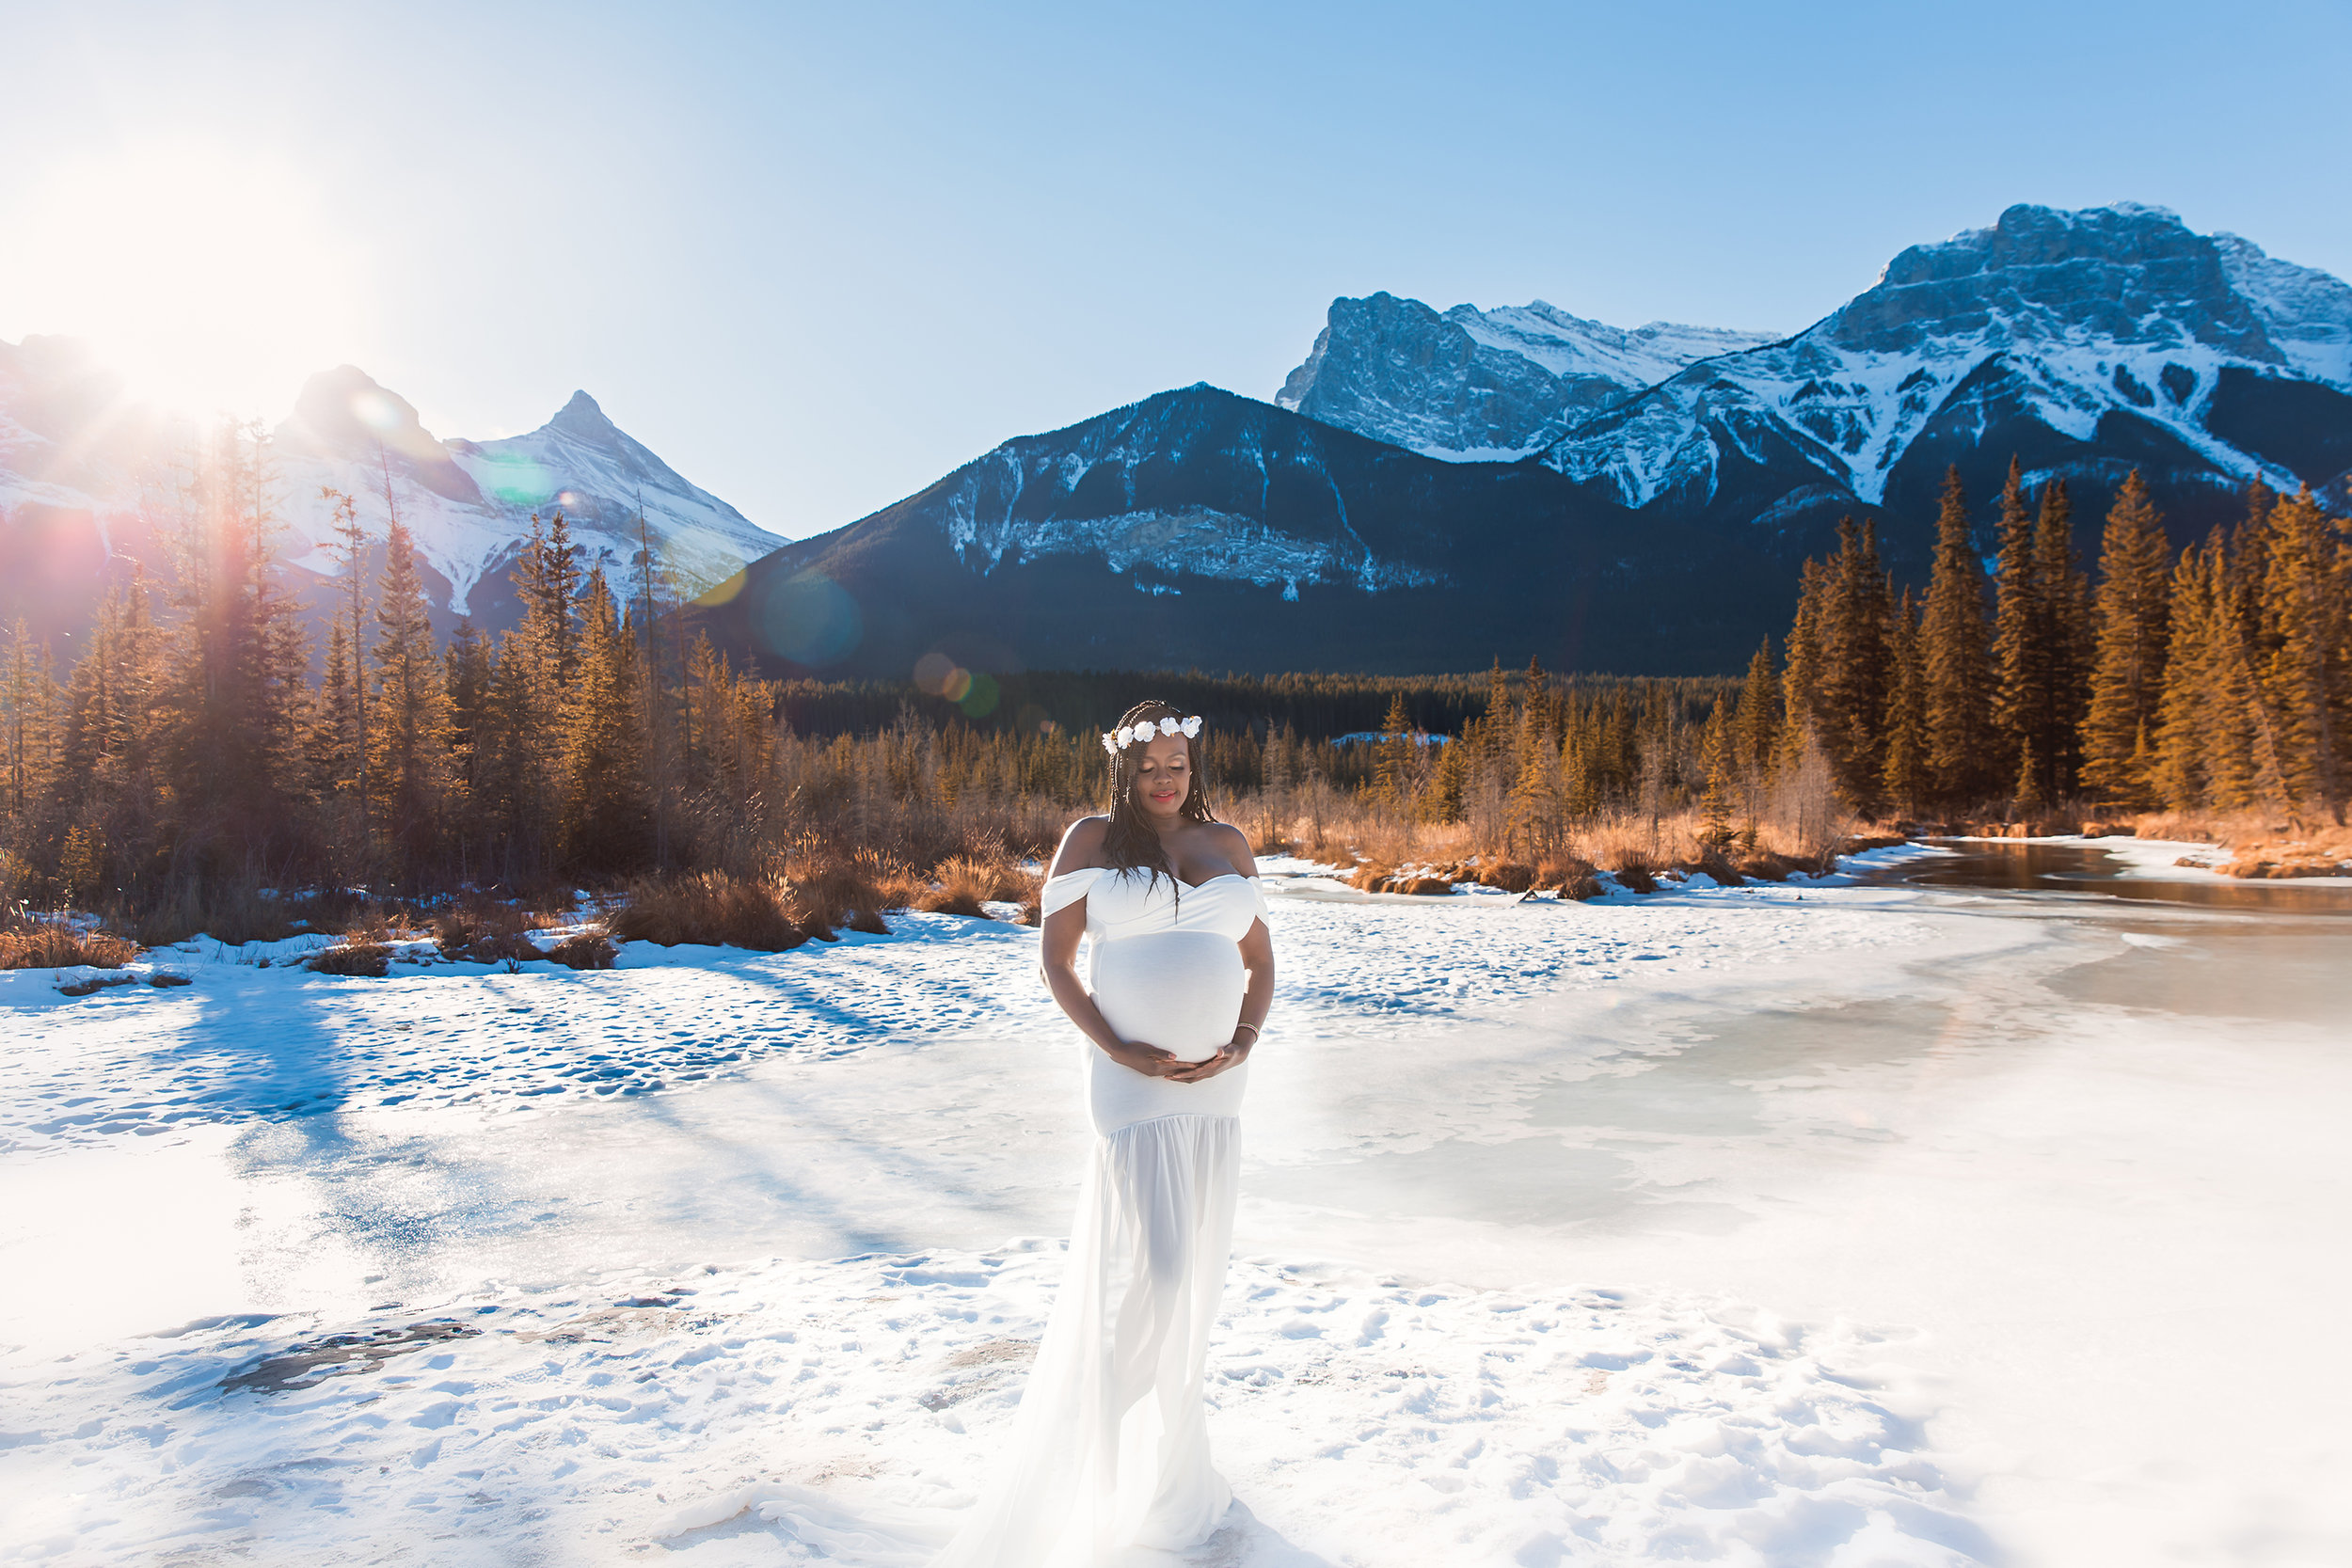 """Blessed"" - the sun is shining upon this pregnant mama, she is standing on a snow in a beautiful white gown with Rocky Mountains and forest in the background. Calgary Maternity Photographer - Mountain Maternity Session in Alberta - Milashka Photography"